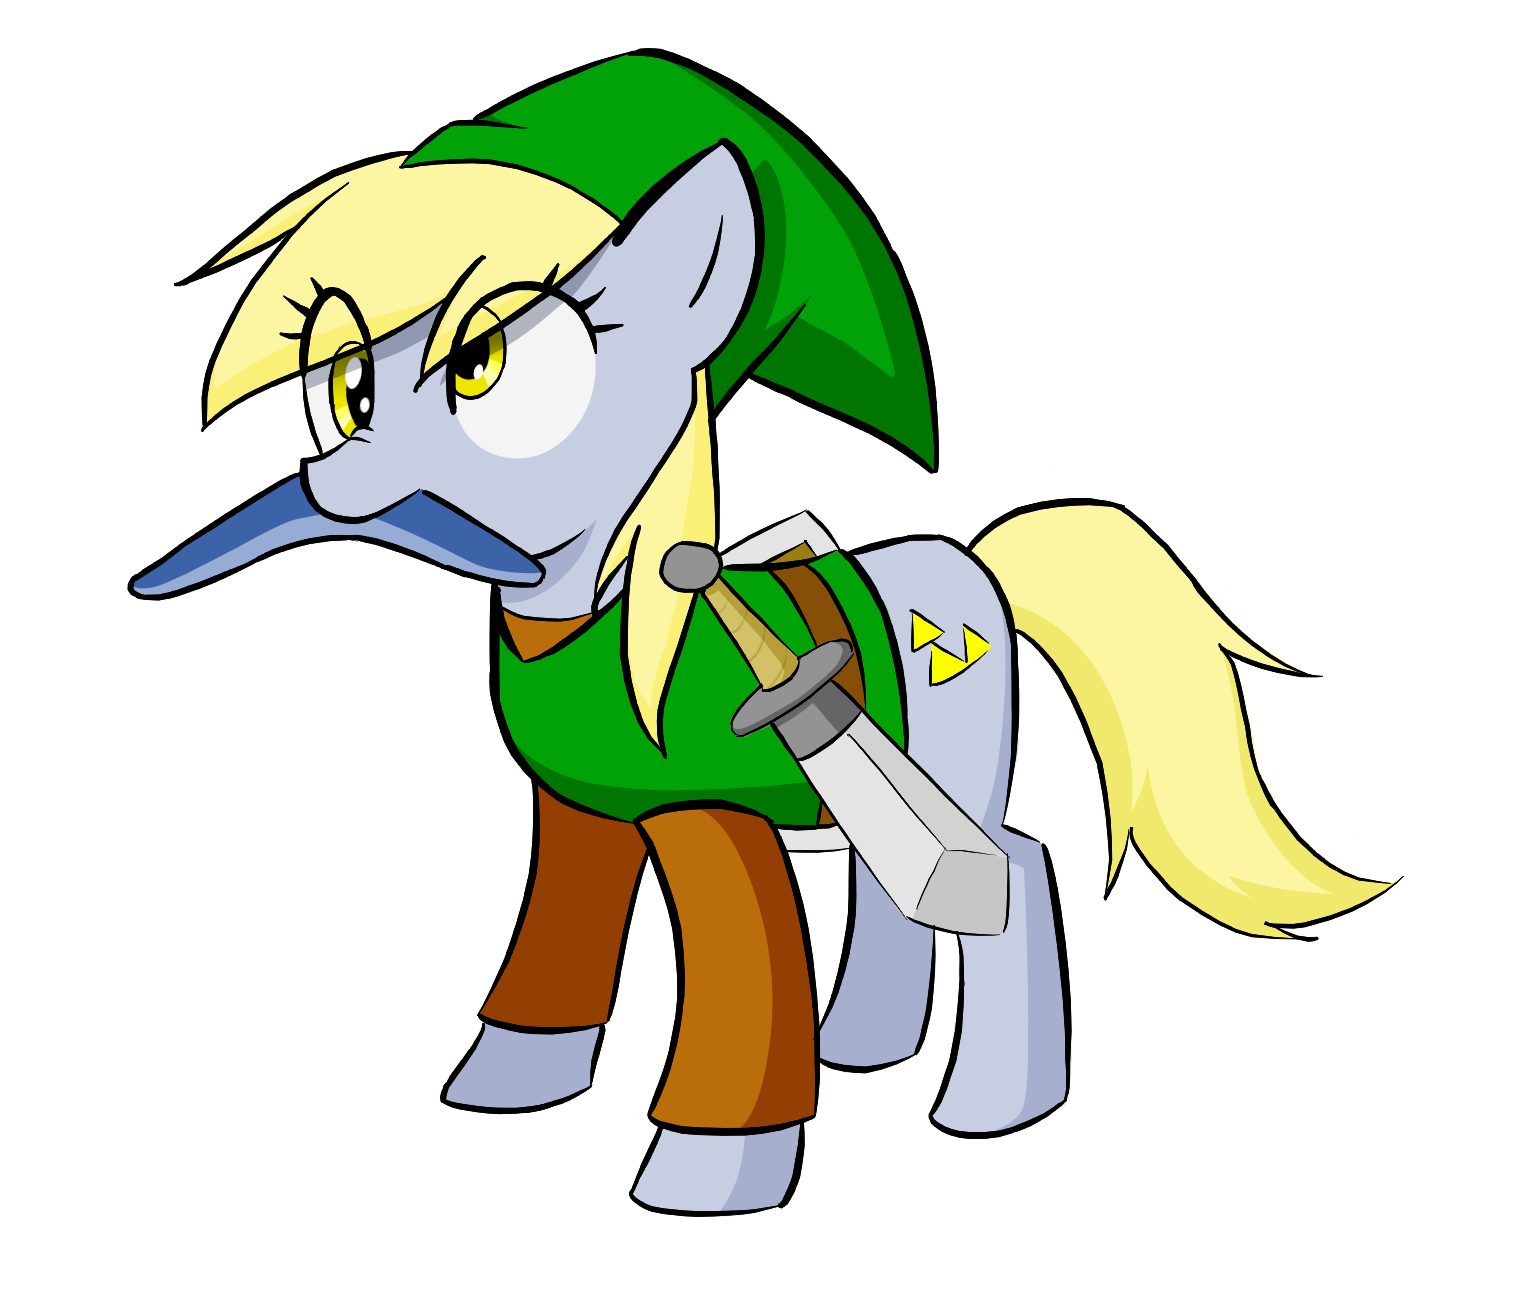 Derpy Hooves Scrunchy Face File69799 - boomerang derpy